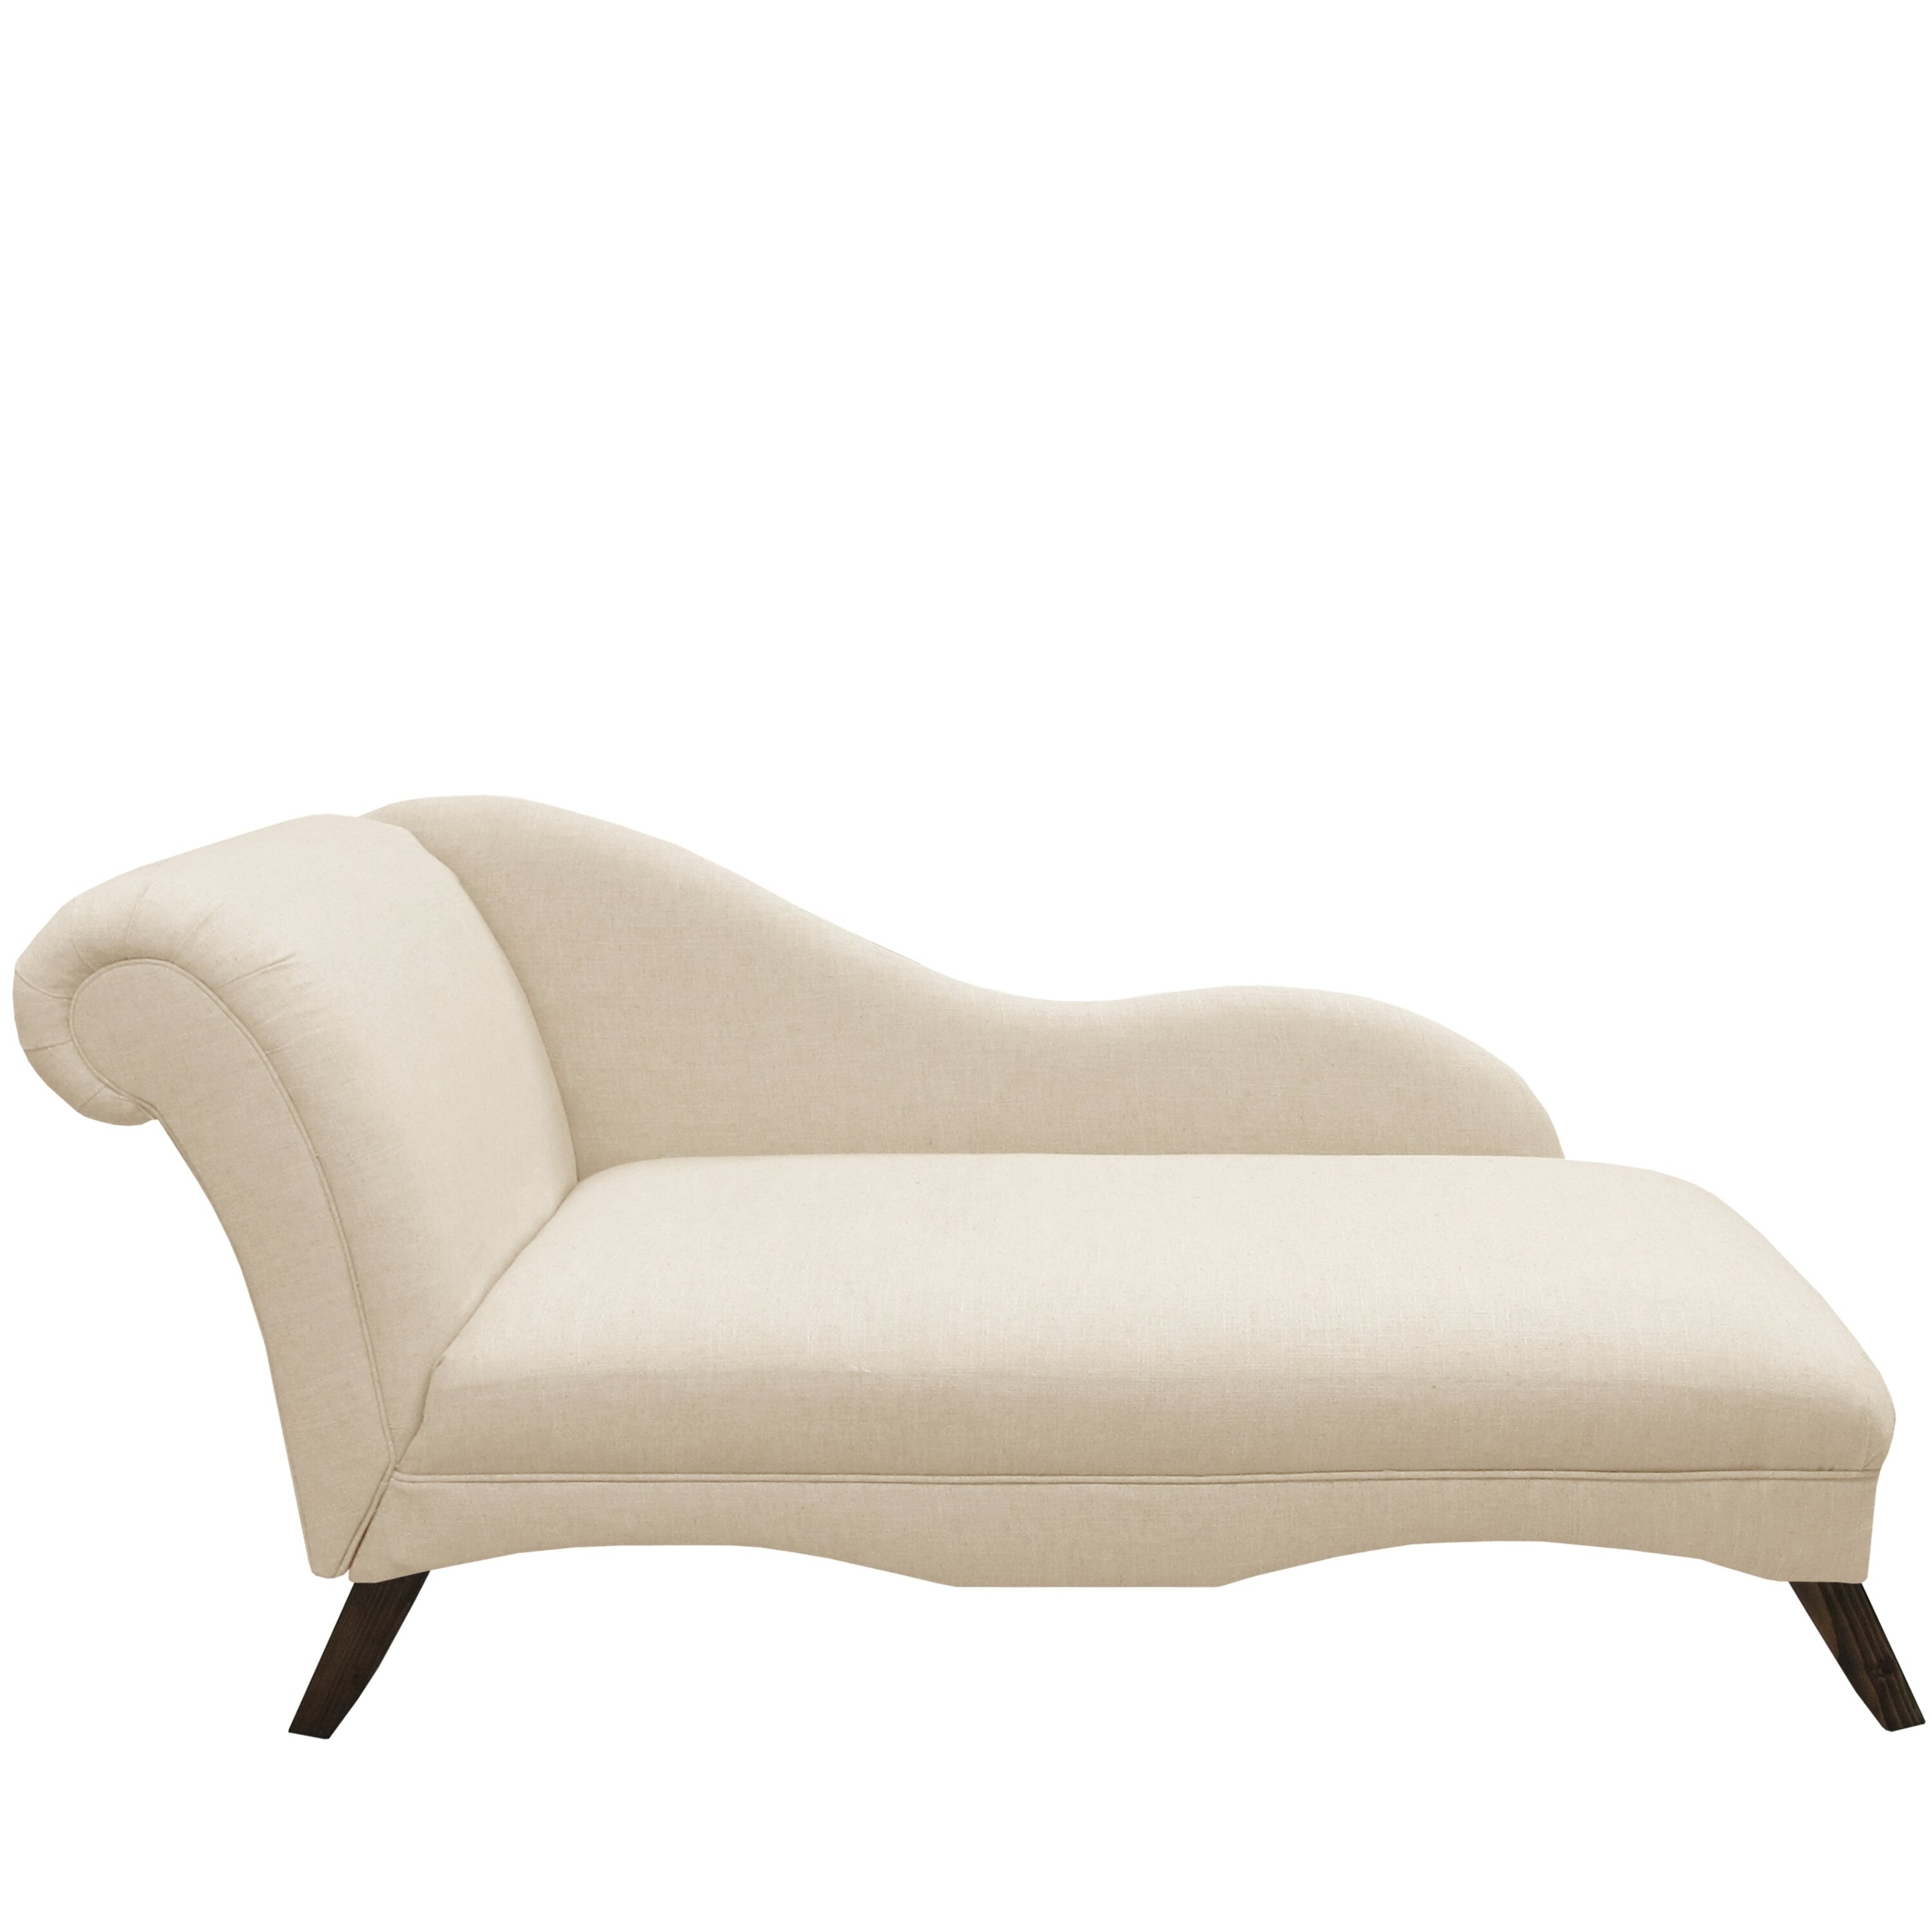 Small Chaise Lounge Ideas On Foter